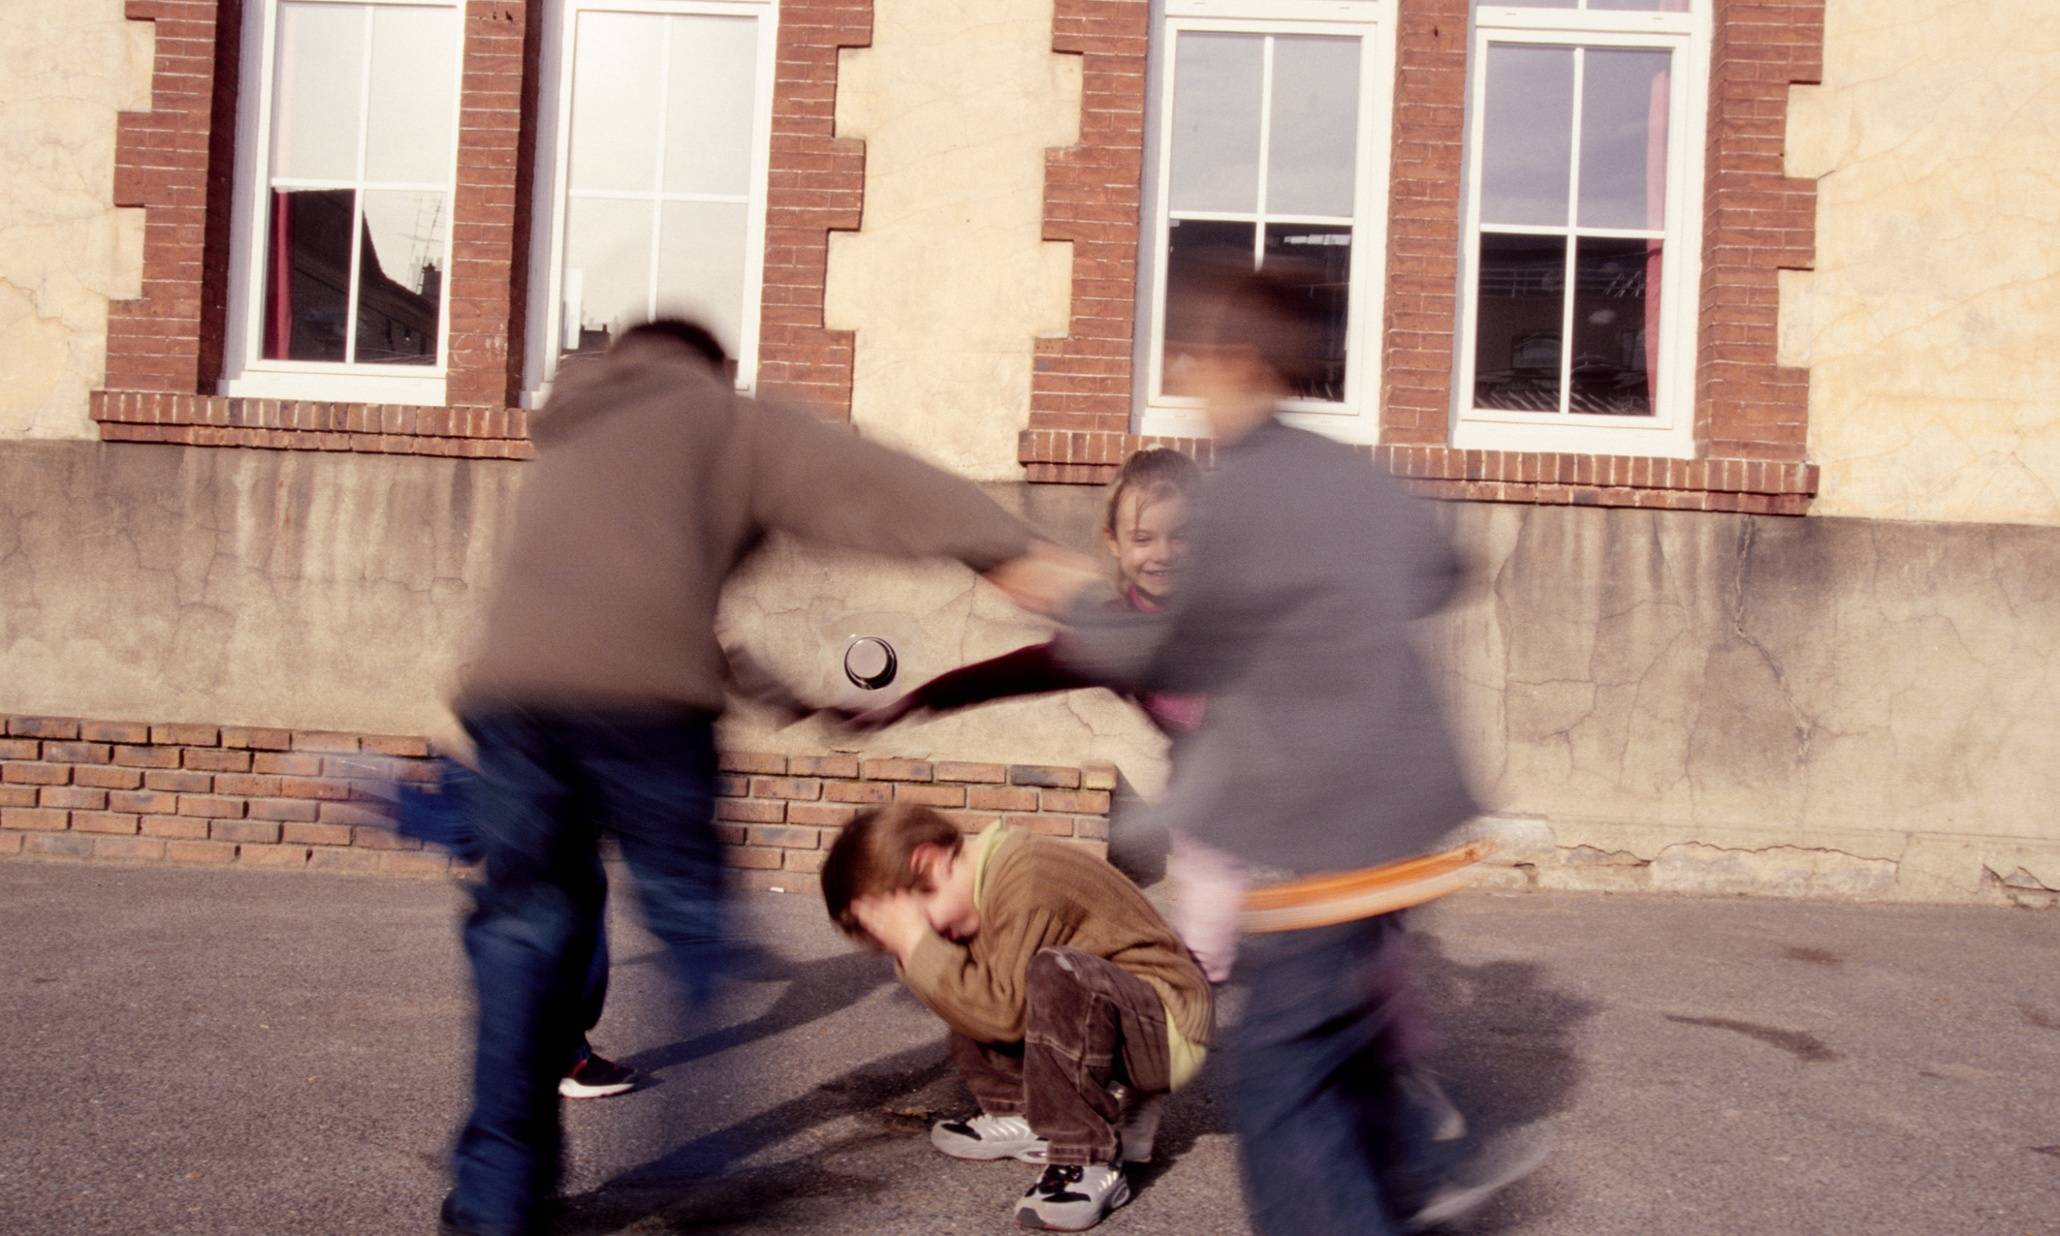 bullies should be kicked out of school